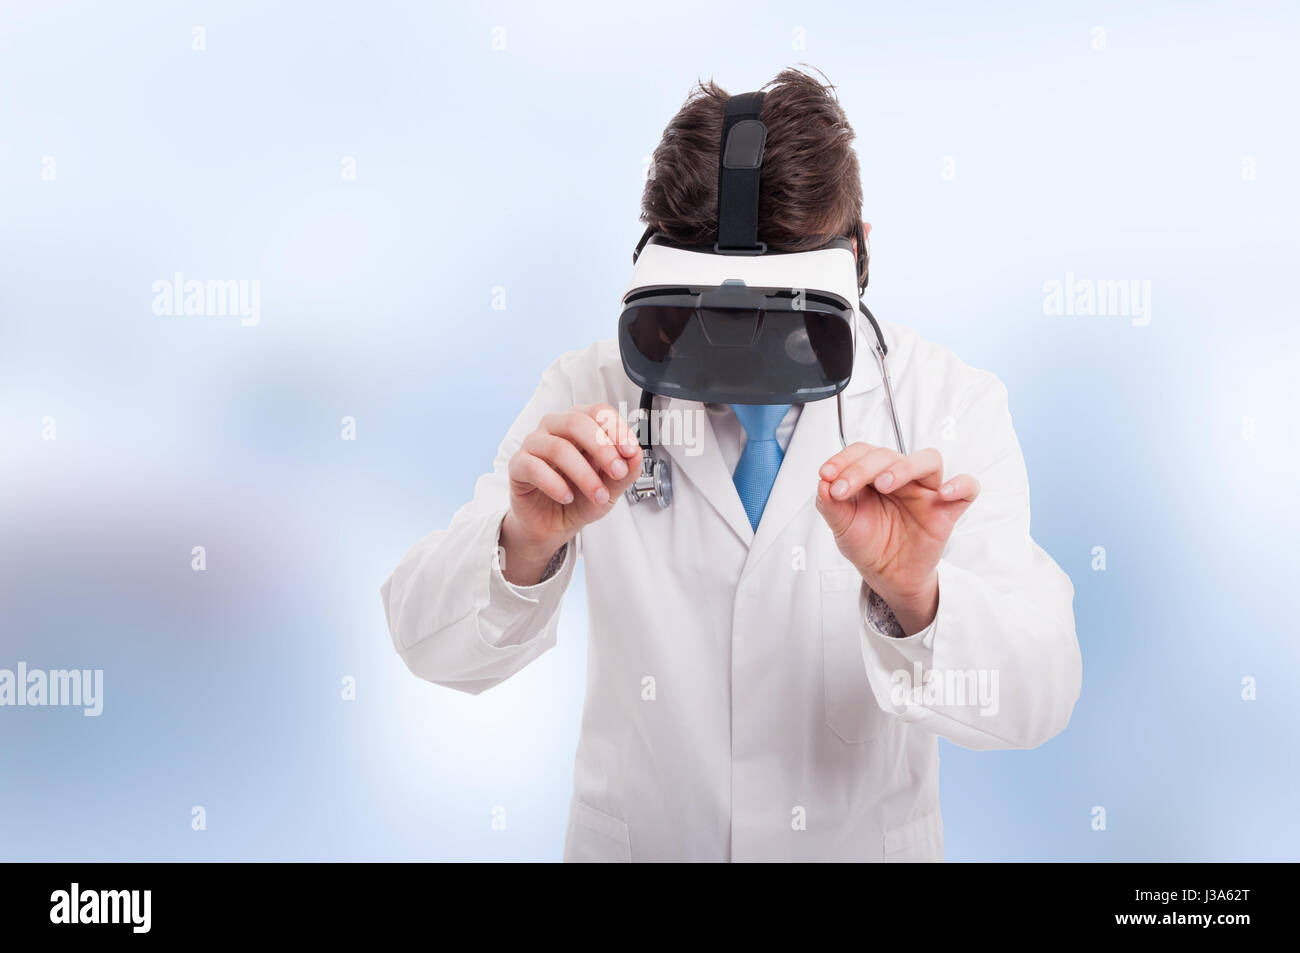 Medic using VR gadget to learn new things or  methods of surgery - Stock Image